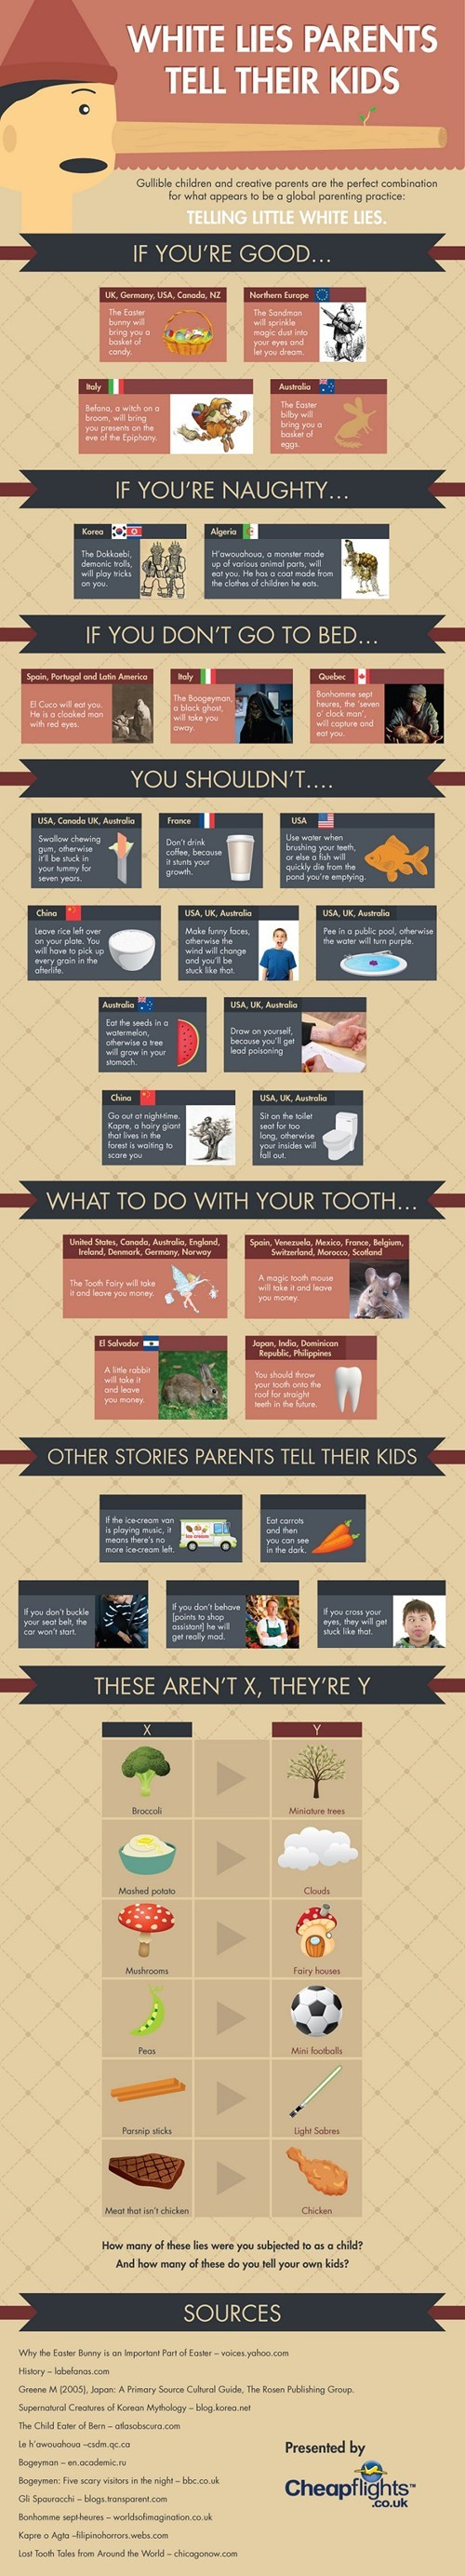 infographic lies parenting - 7937401344